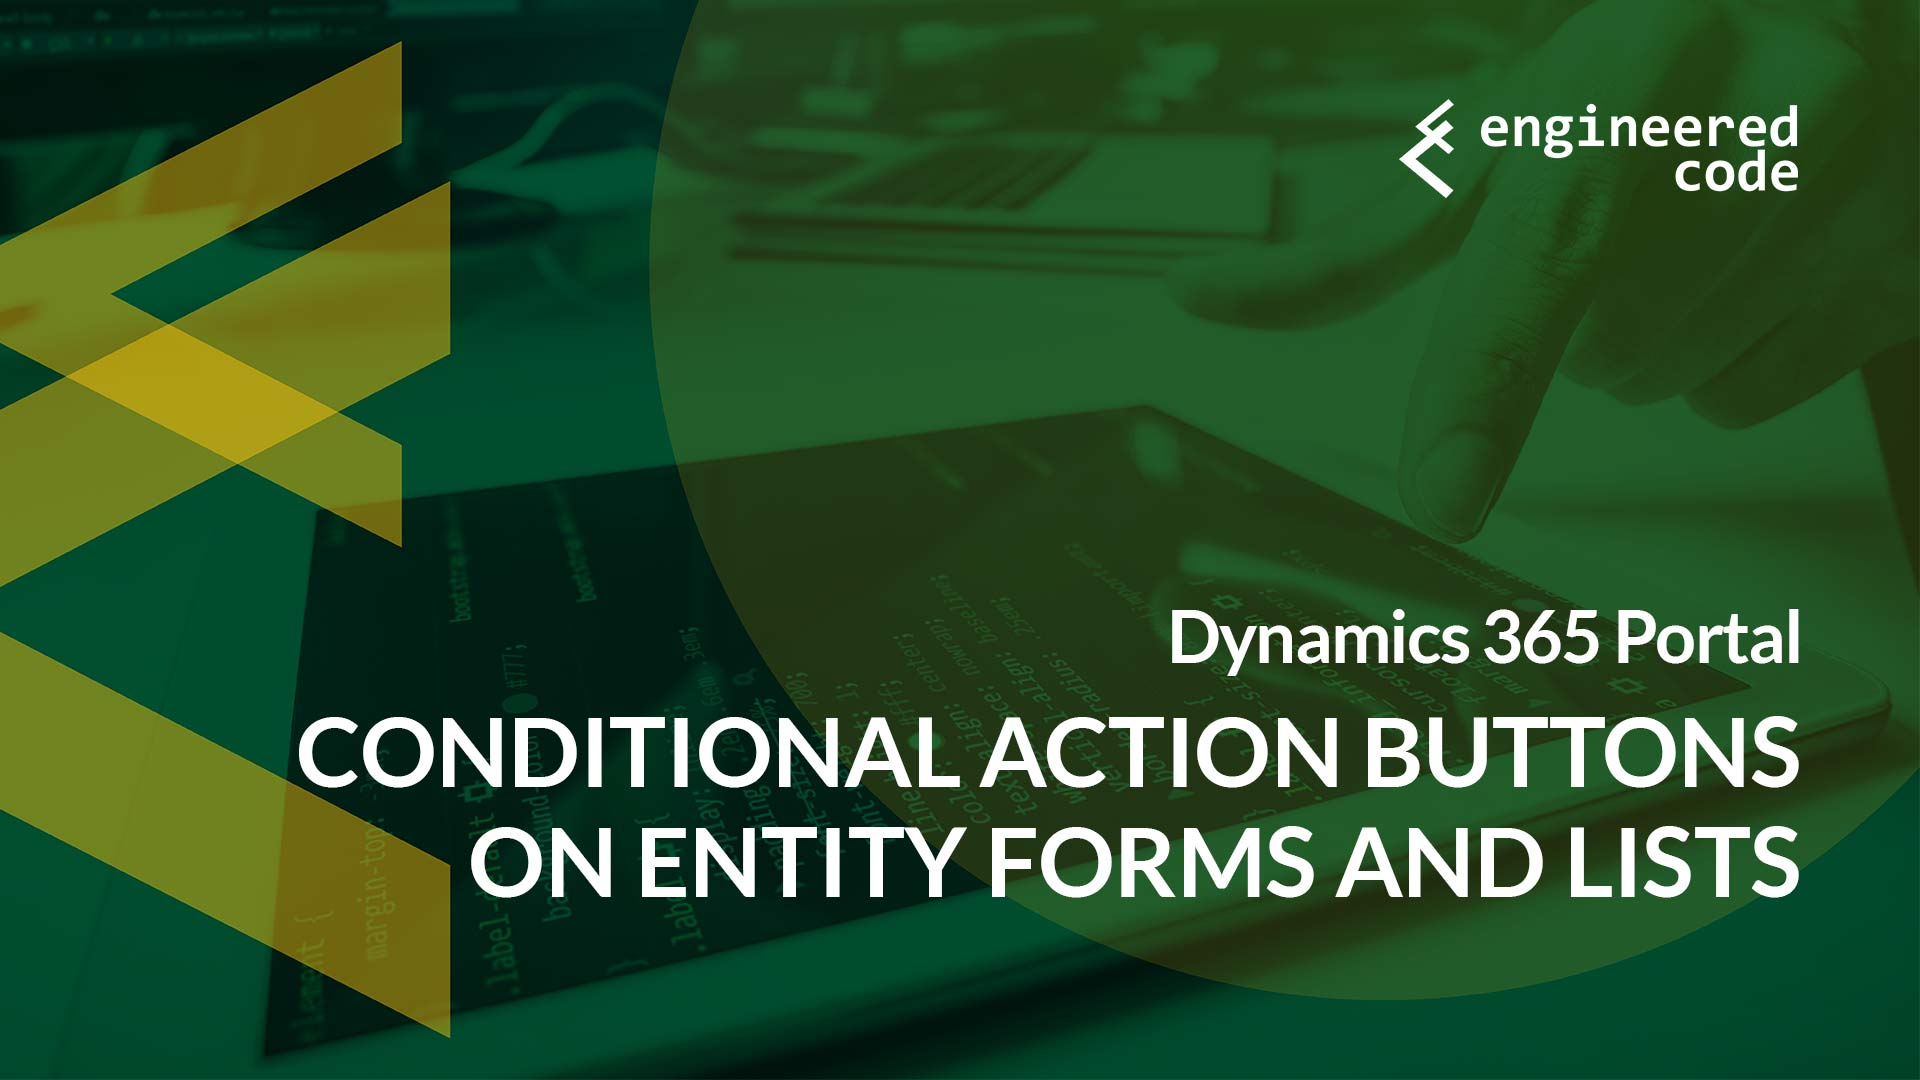 Engineered Code - Blog - Dynamics 365 Portal: Conditional